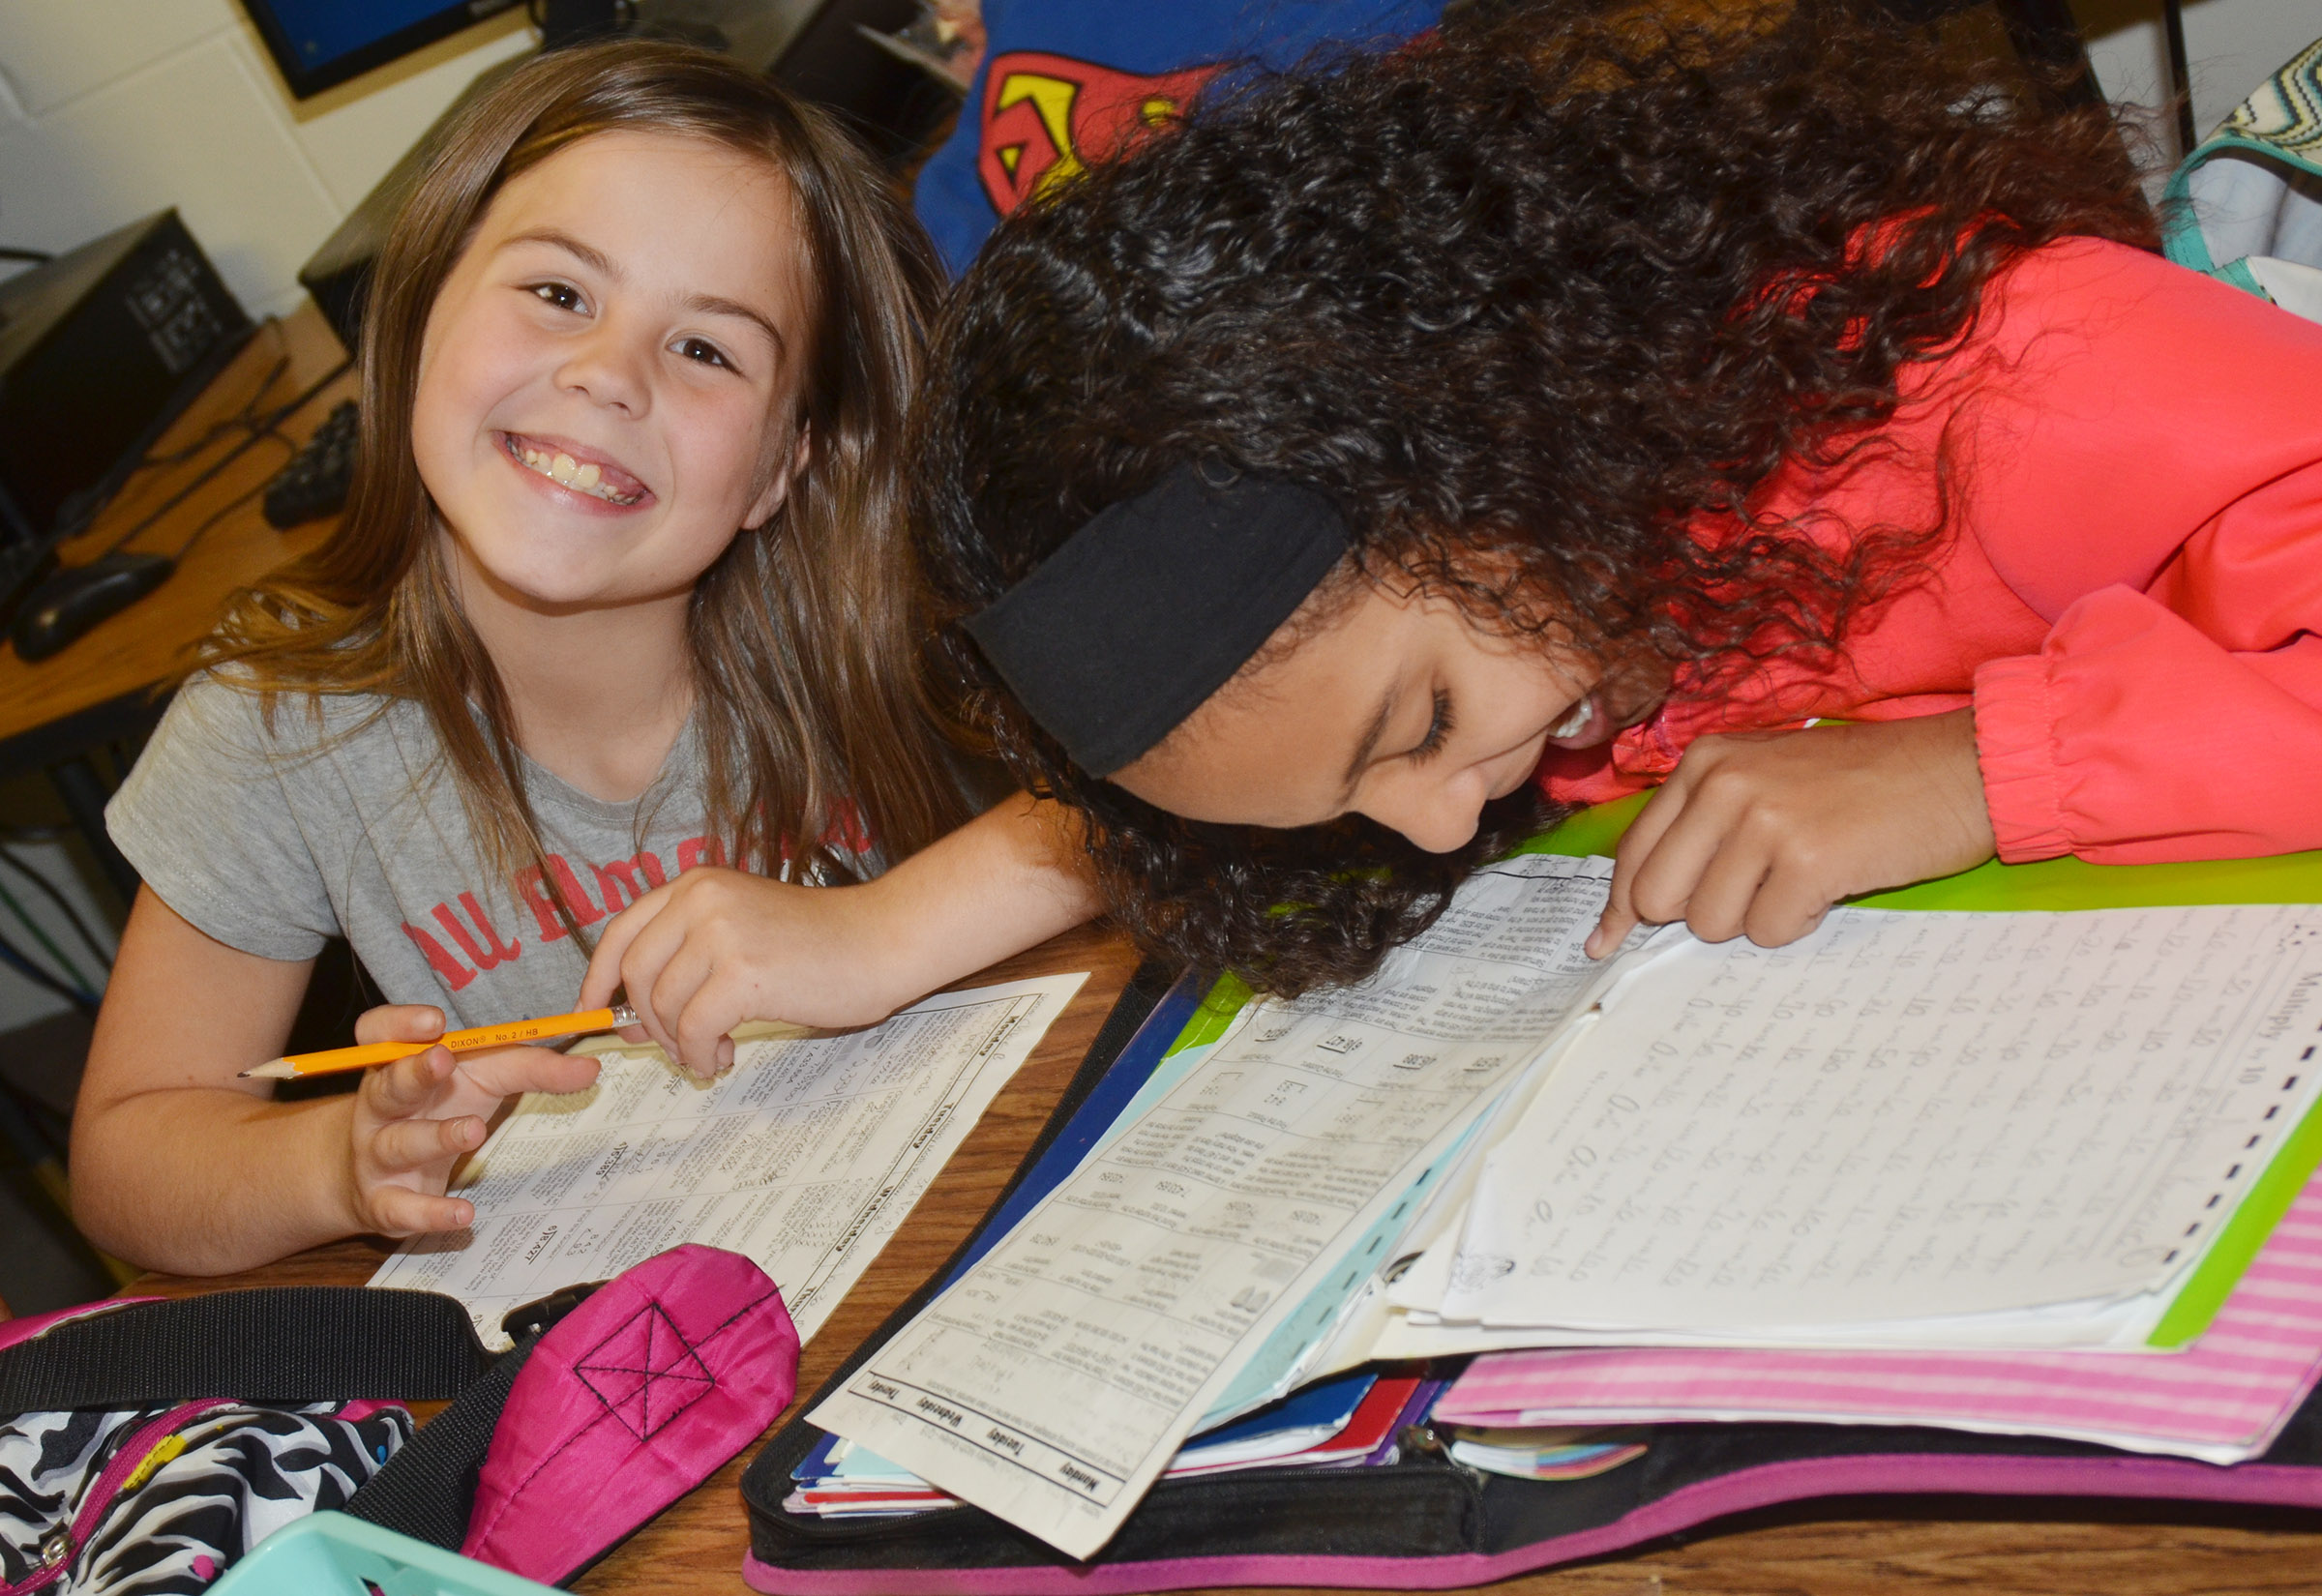 CES fourth-graders Chloe Bates, at left, and Alyssa Knezevic work on their homework.